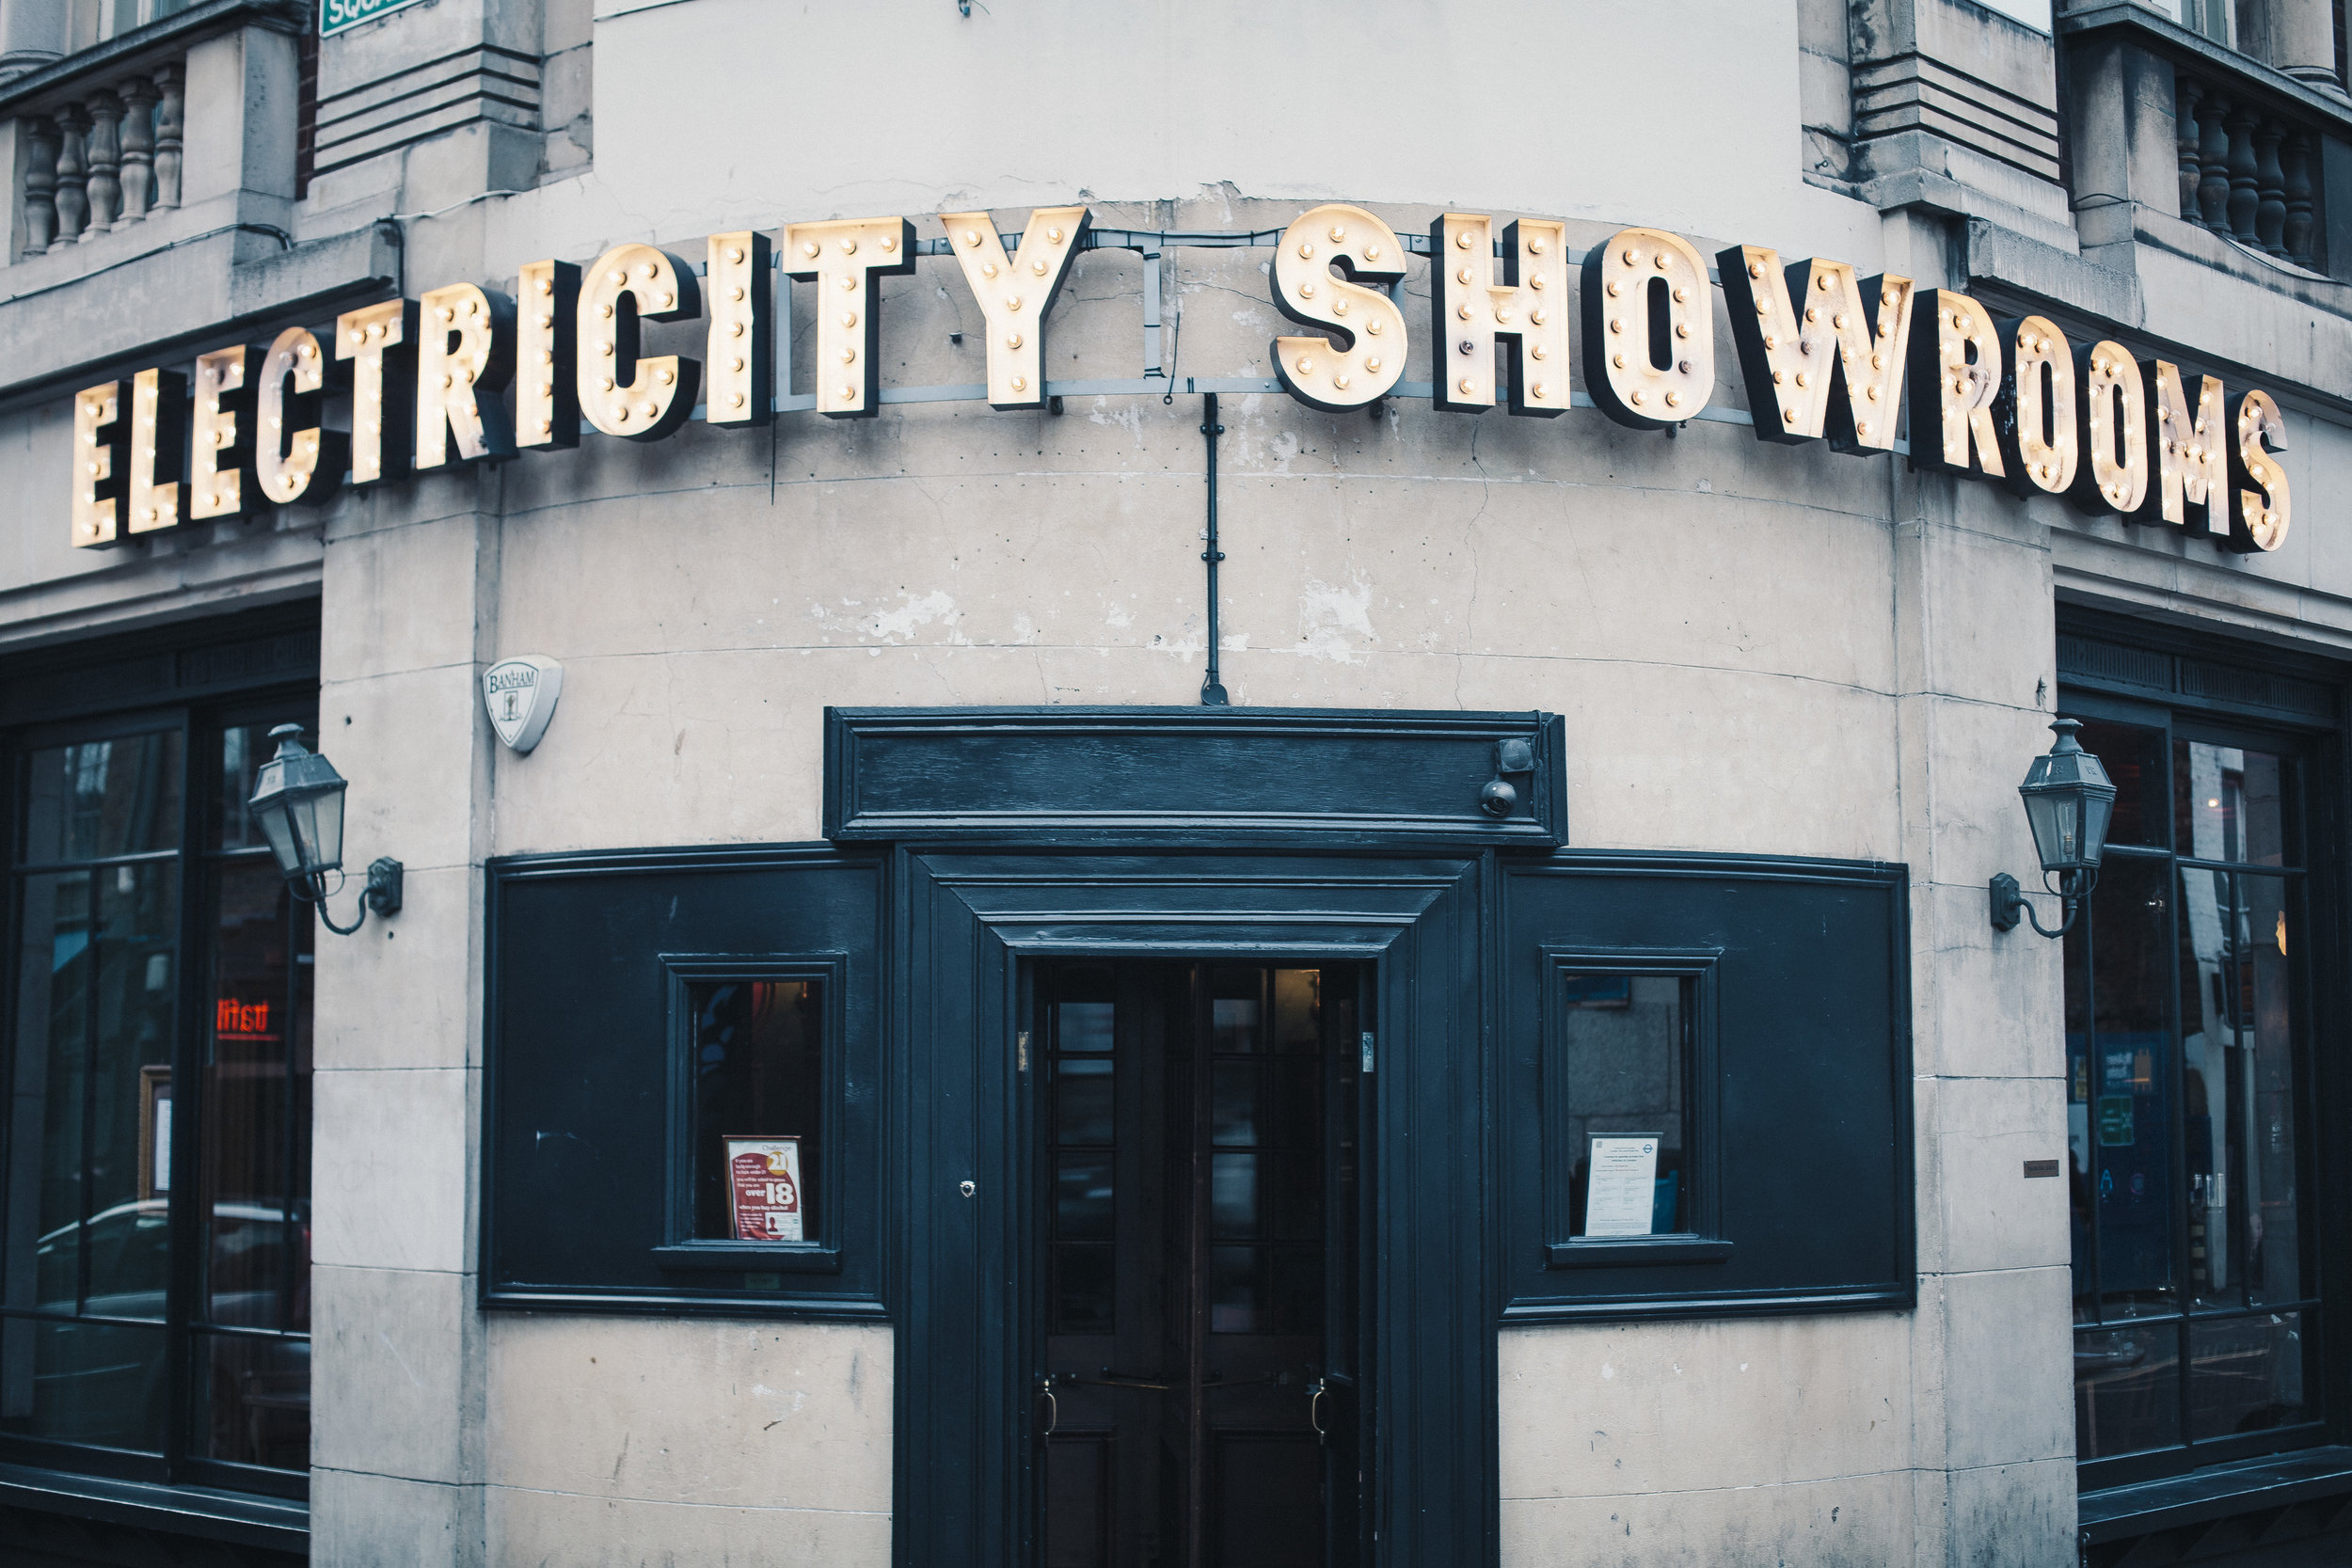 The Electricity Showrooms, location of the final portrait